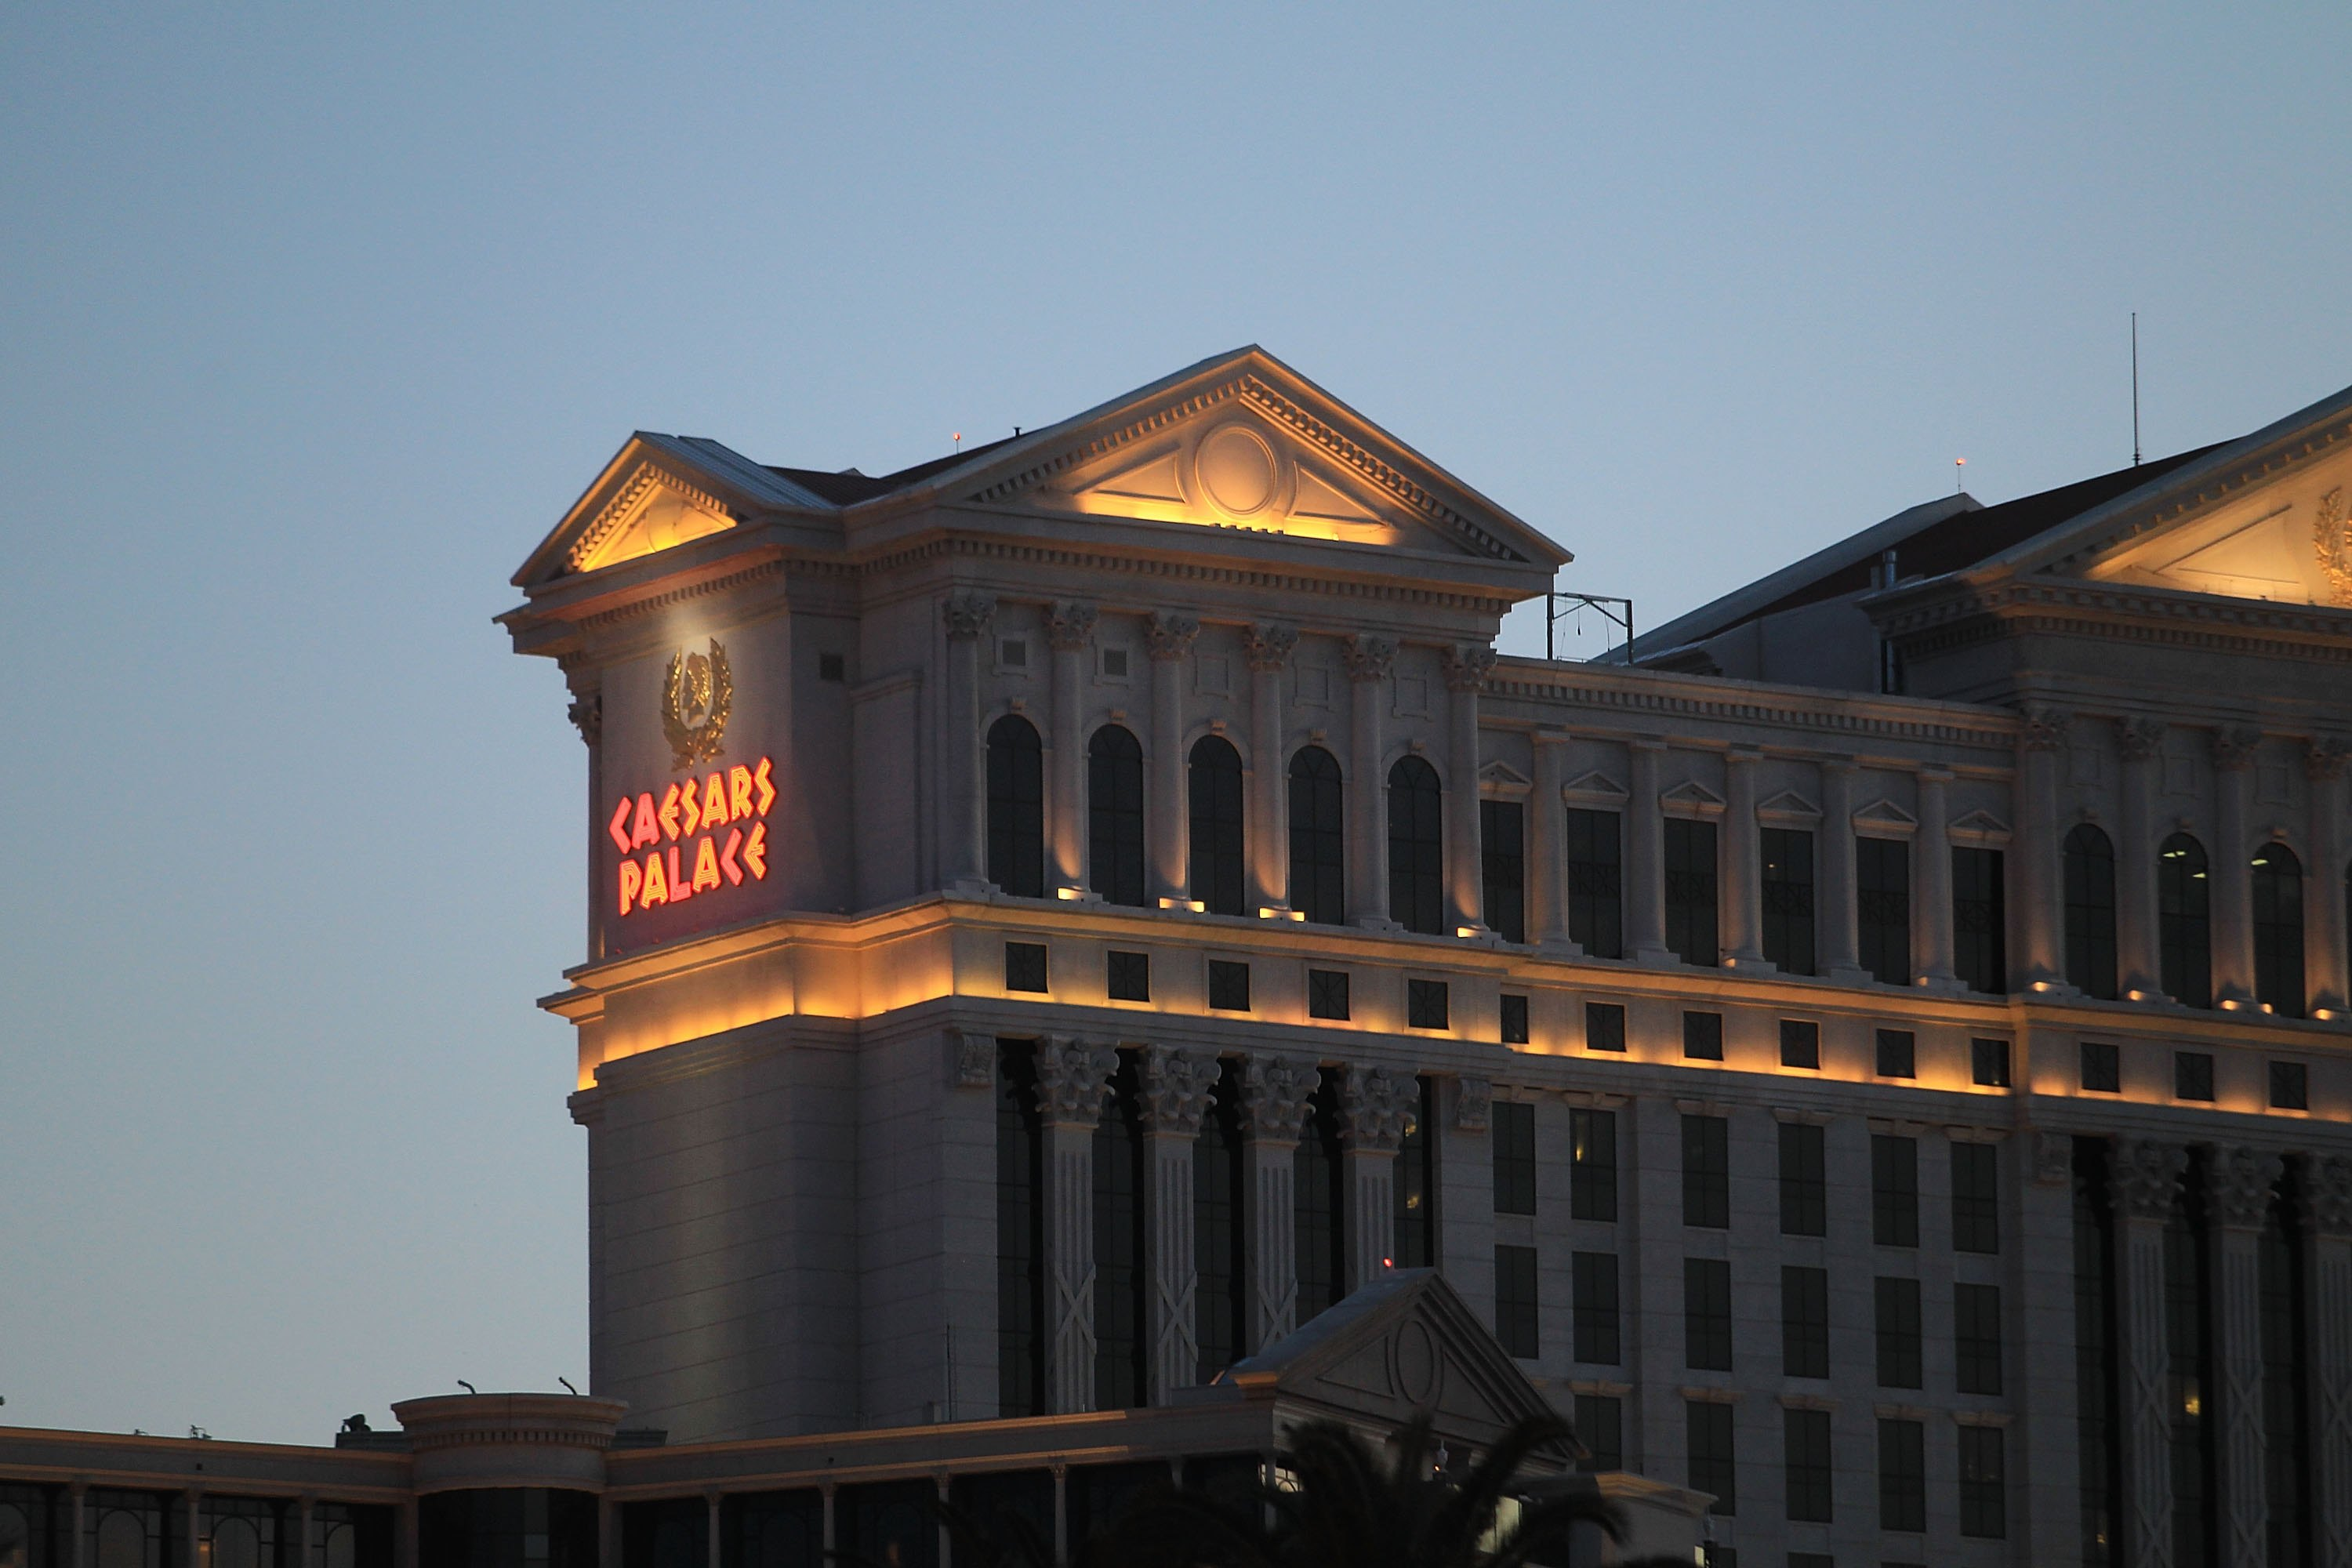 Caesars casino and hotel in Las Vegas.